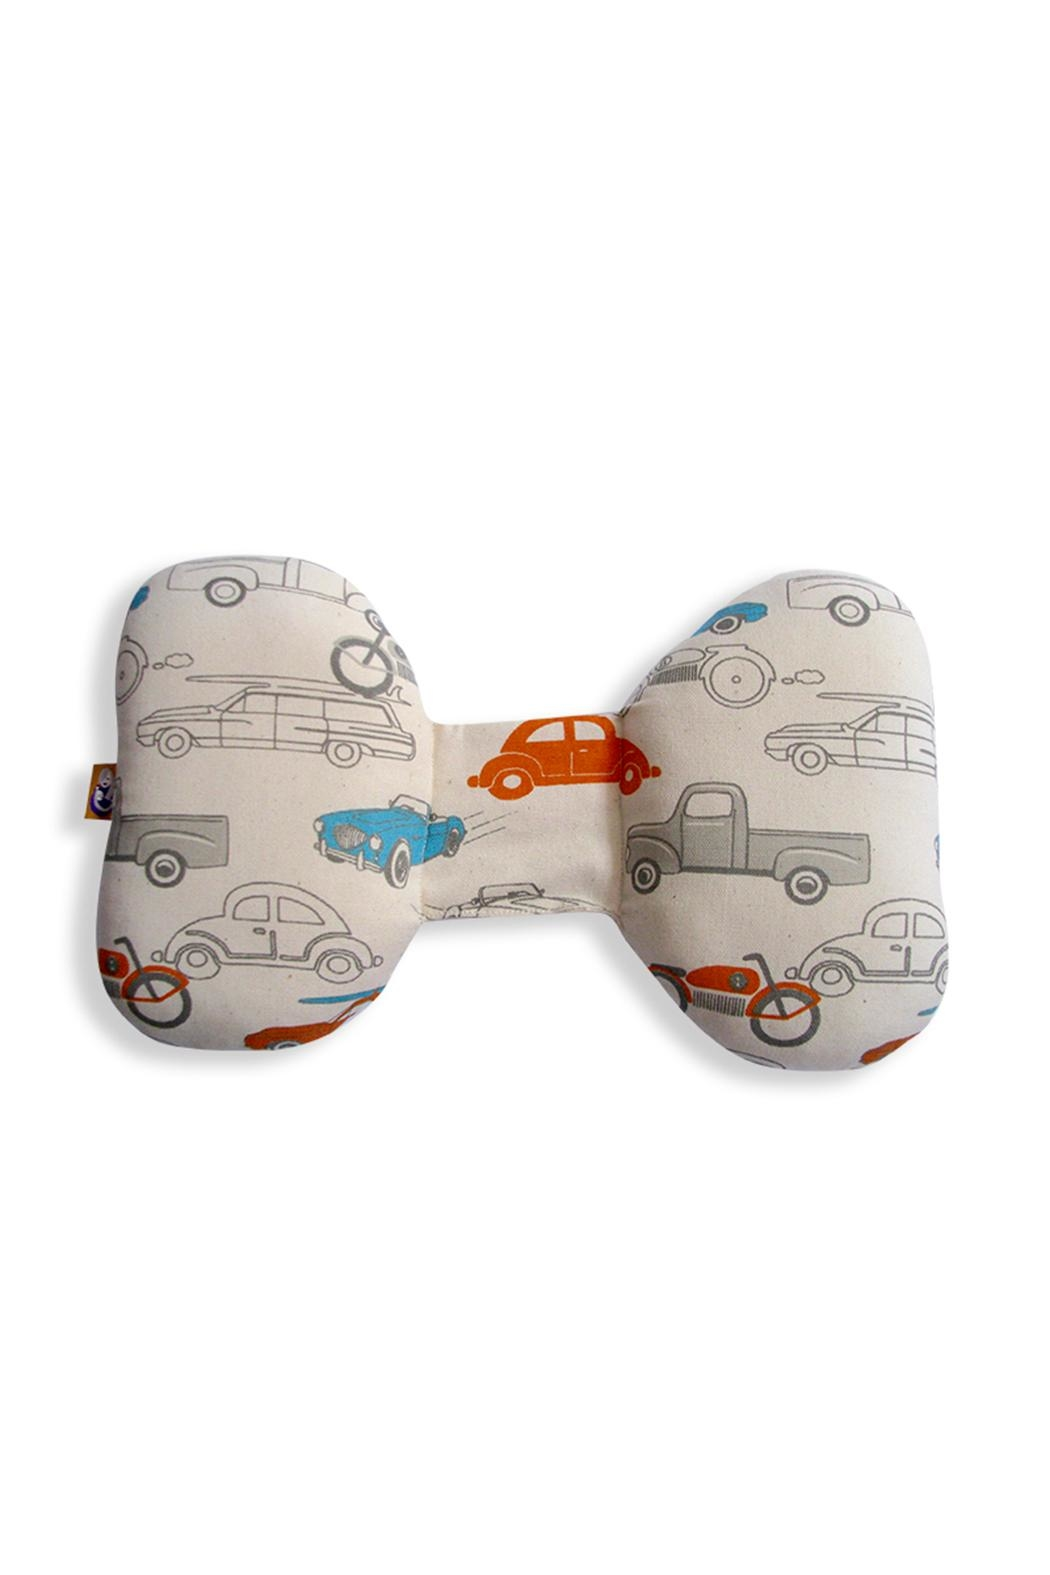 SIBORORI Cars Stroller Pillow from Florida by Yoyo ...